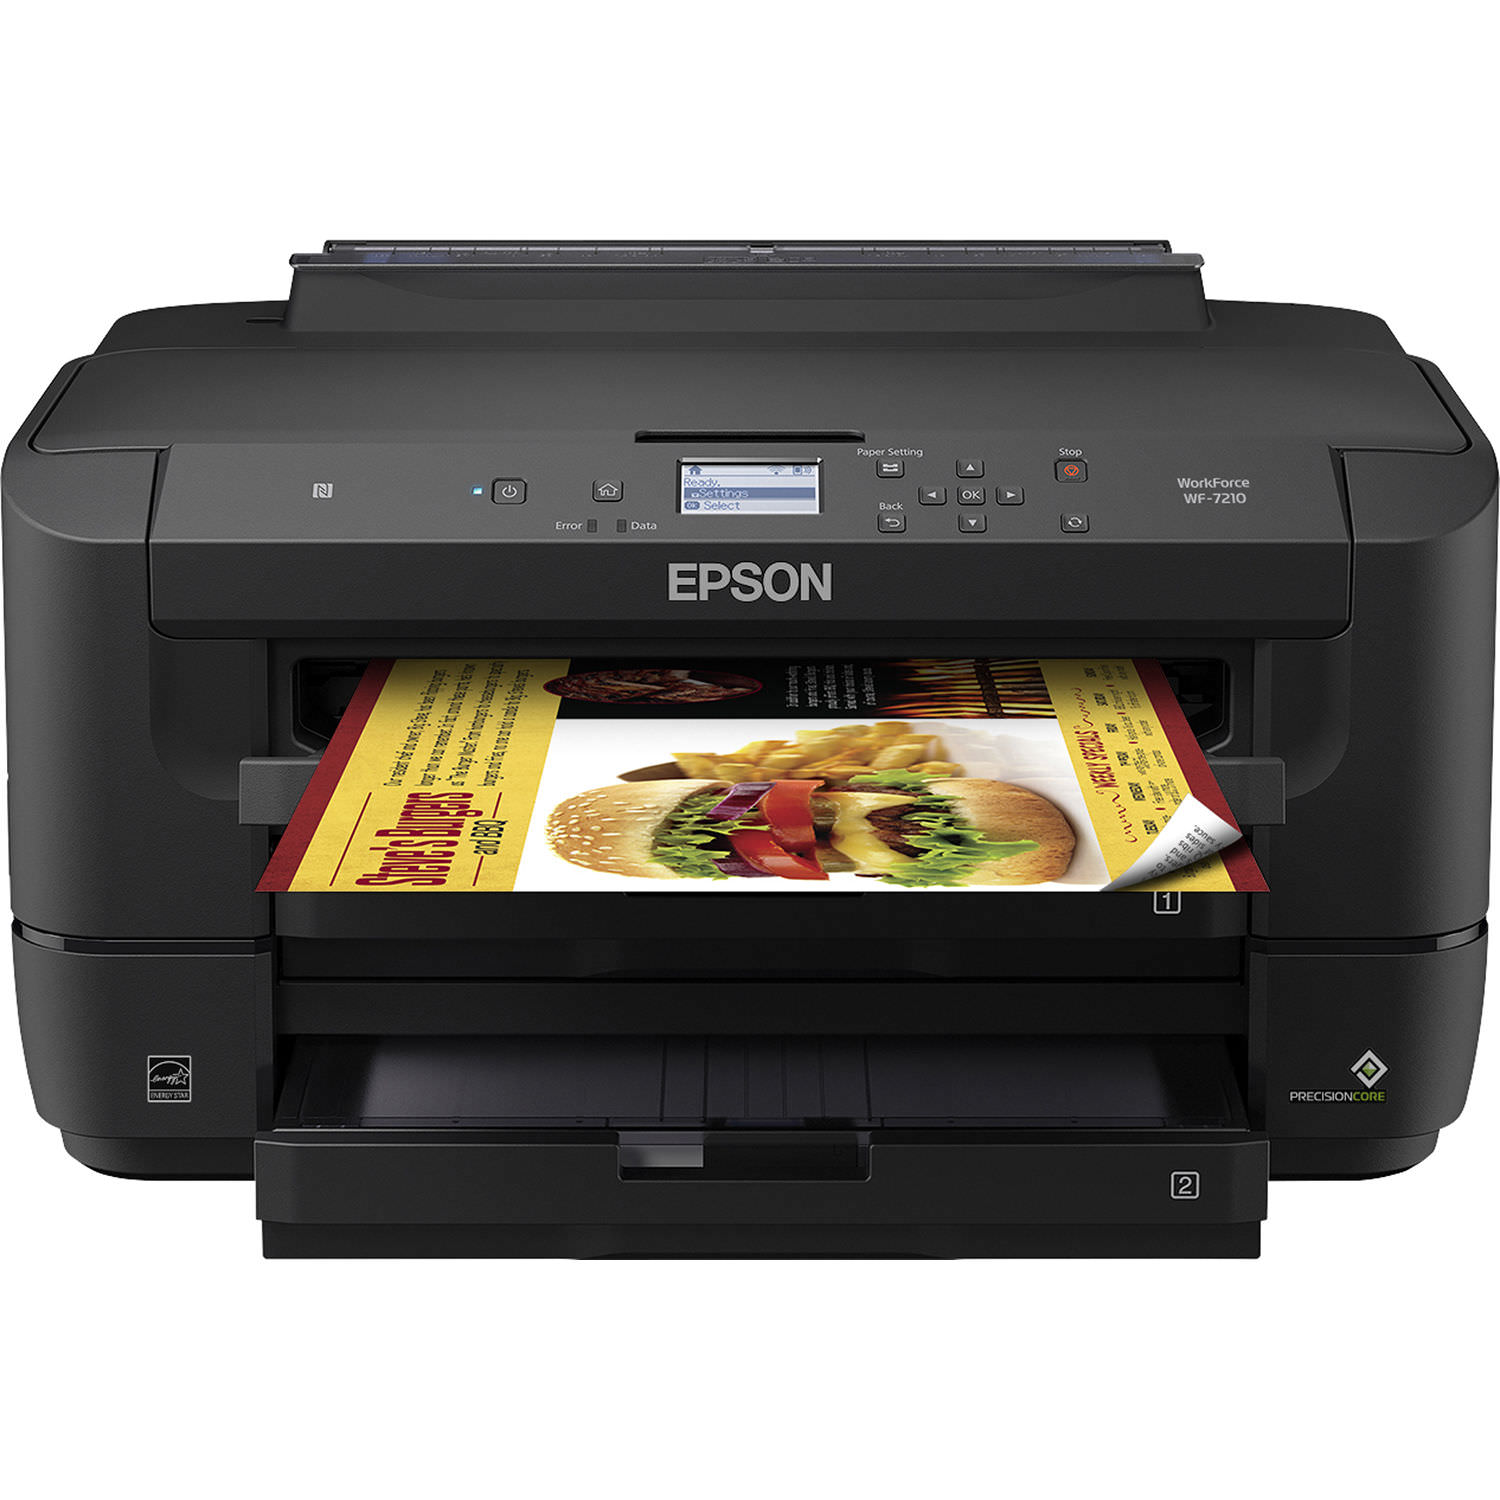 Epson WorkForce WF-7210 Wide-format Printer